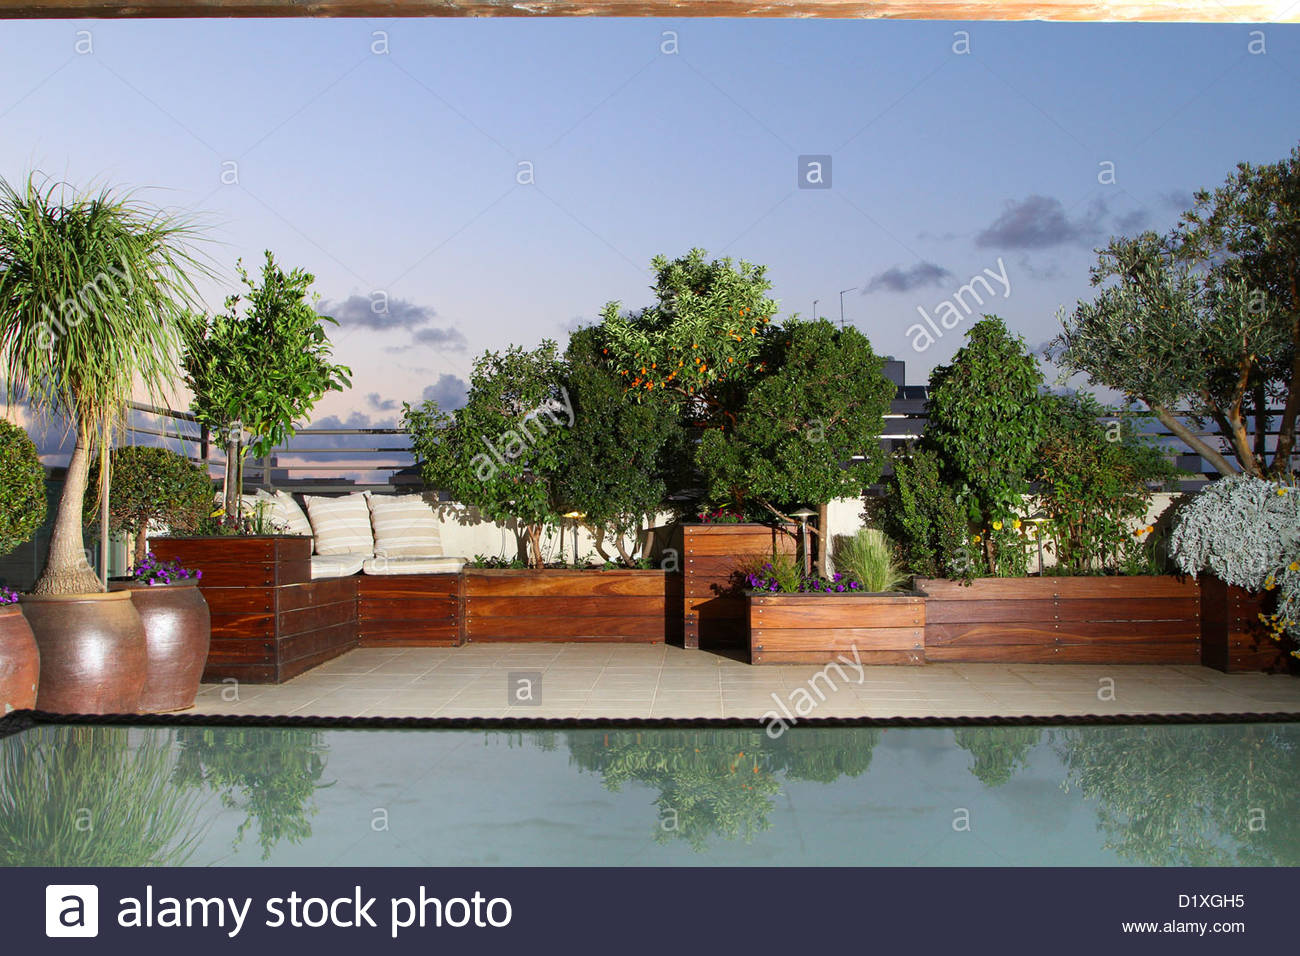 A penthouse roof garden - Stock Image